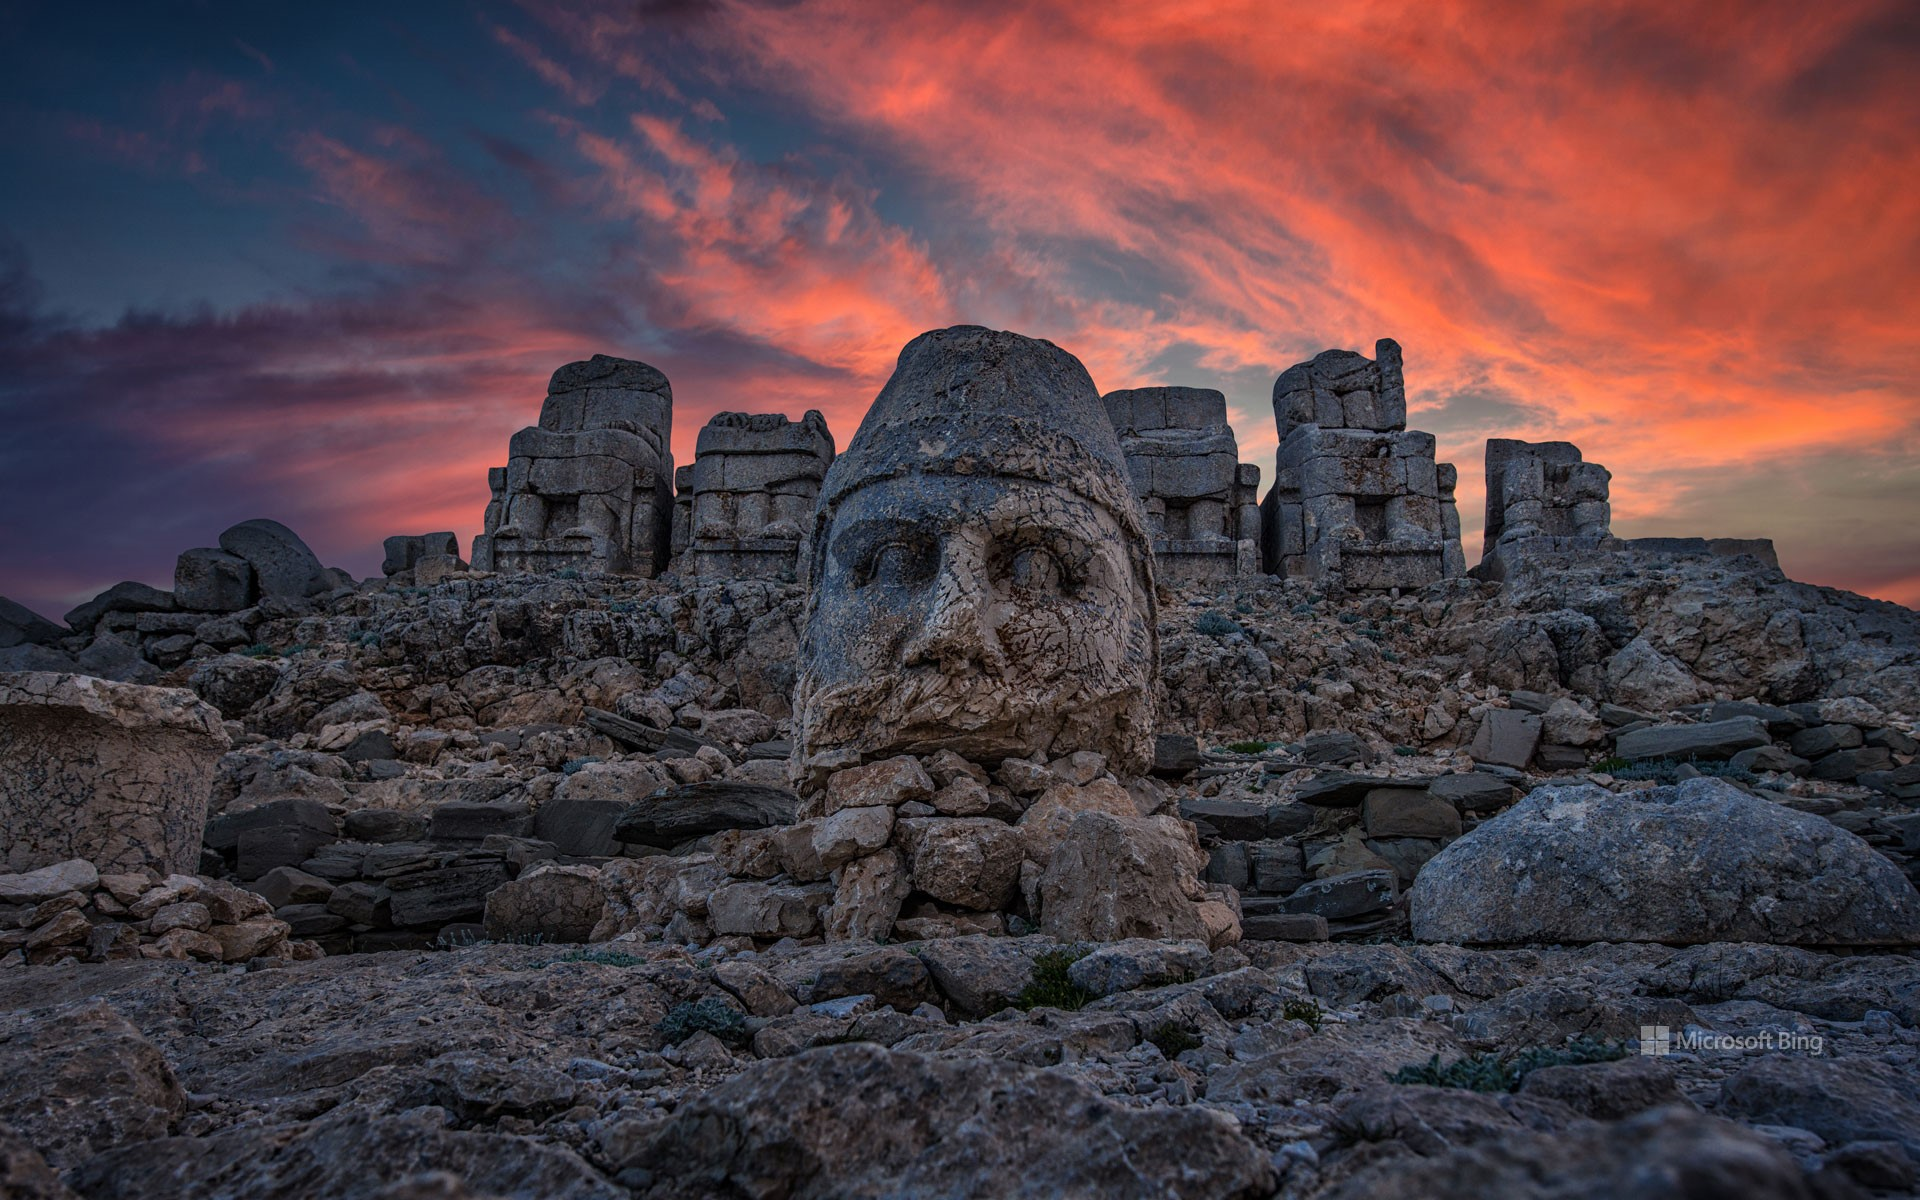 Colossal limestone statues on Mount Nemrut, Adıyaman, Turkey